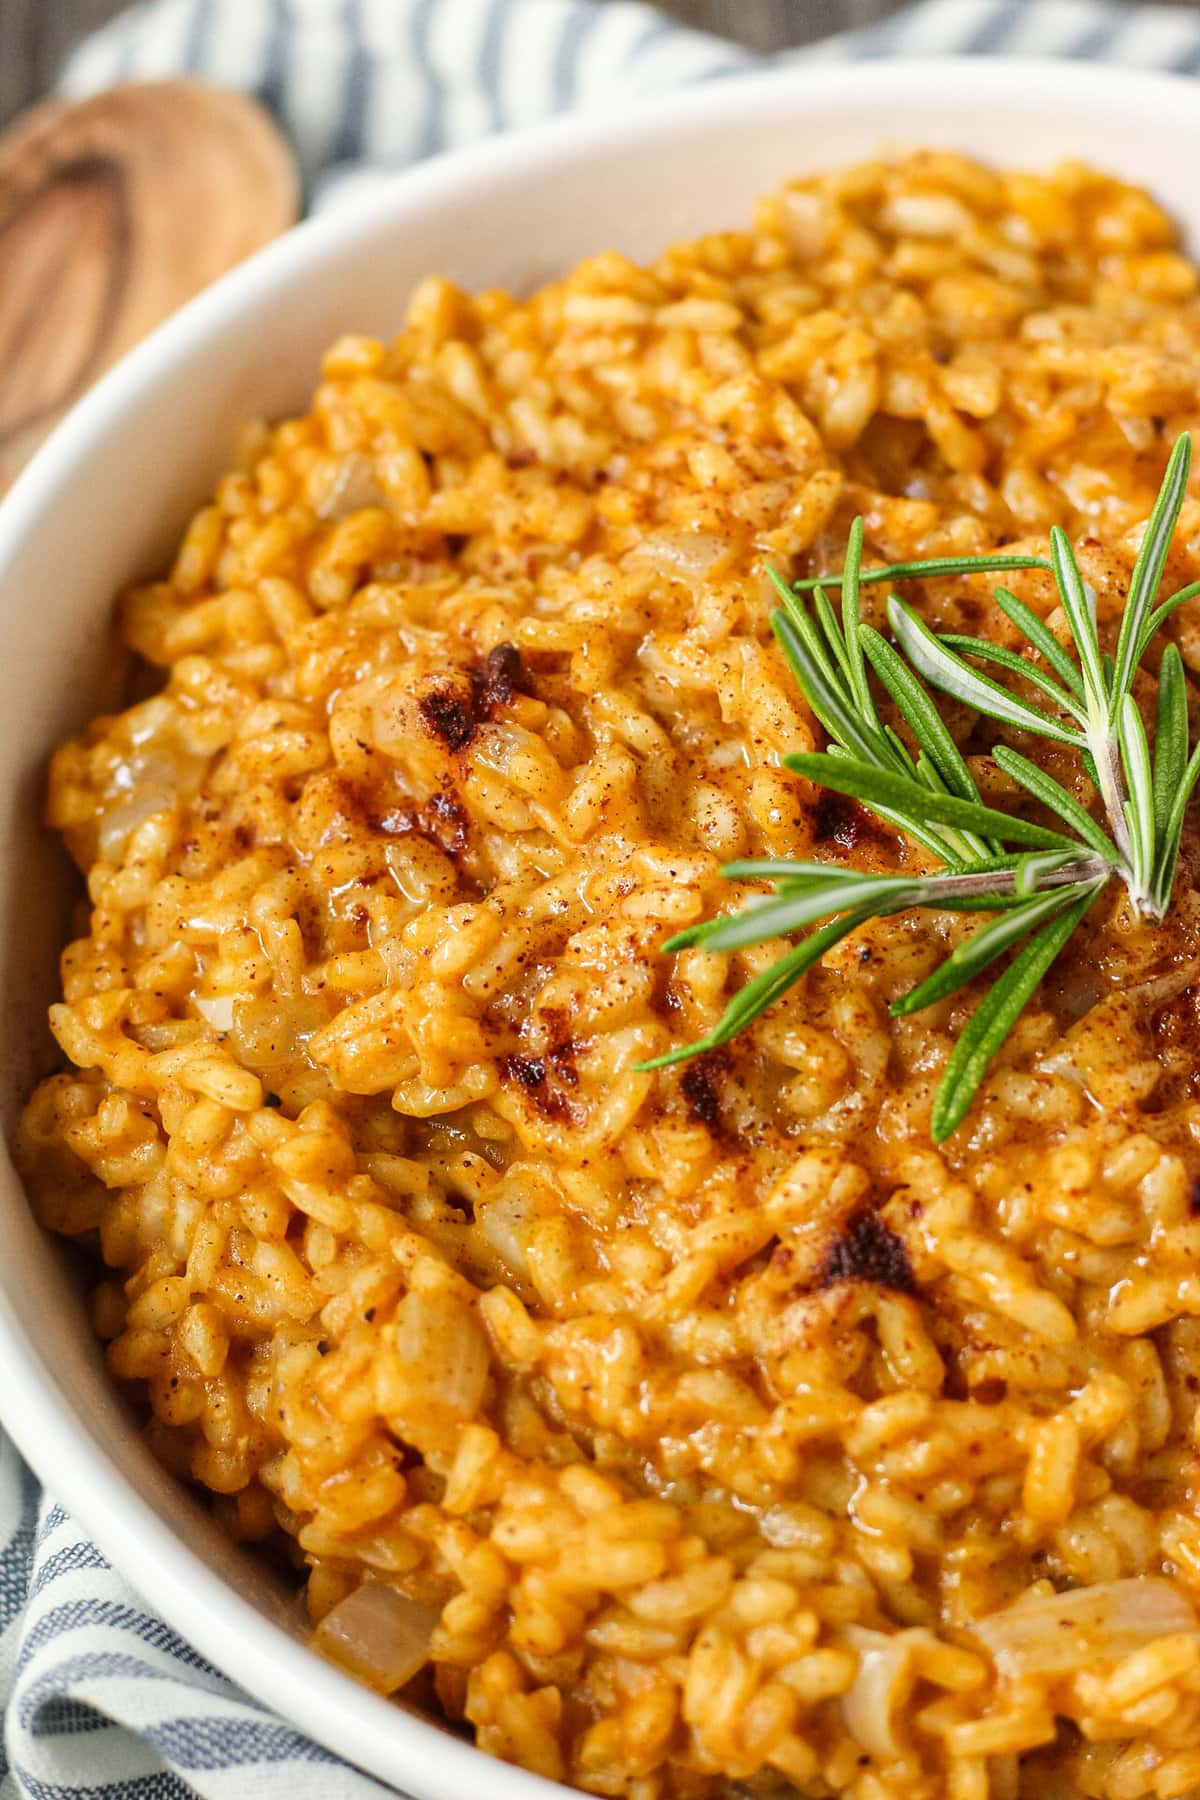 close up side angle shot of creamy pumpkin risotto in a white serving bowl with a striped linen underneath and a wooden serving spoon in the top left corner.